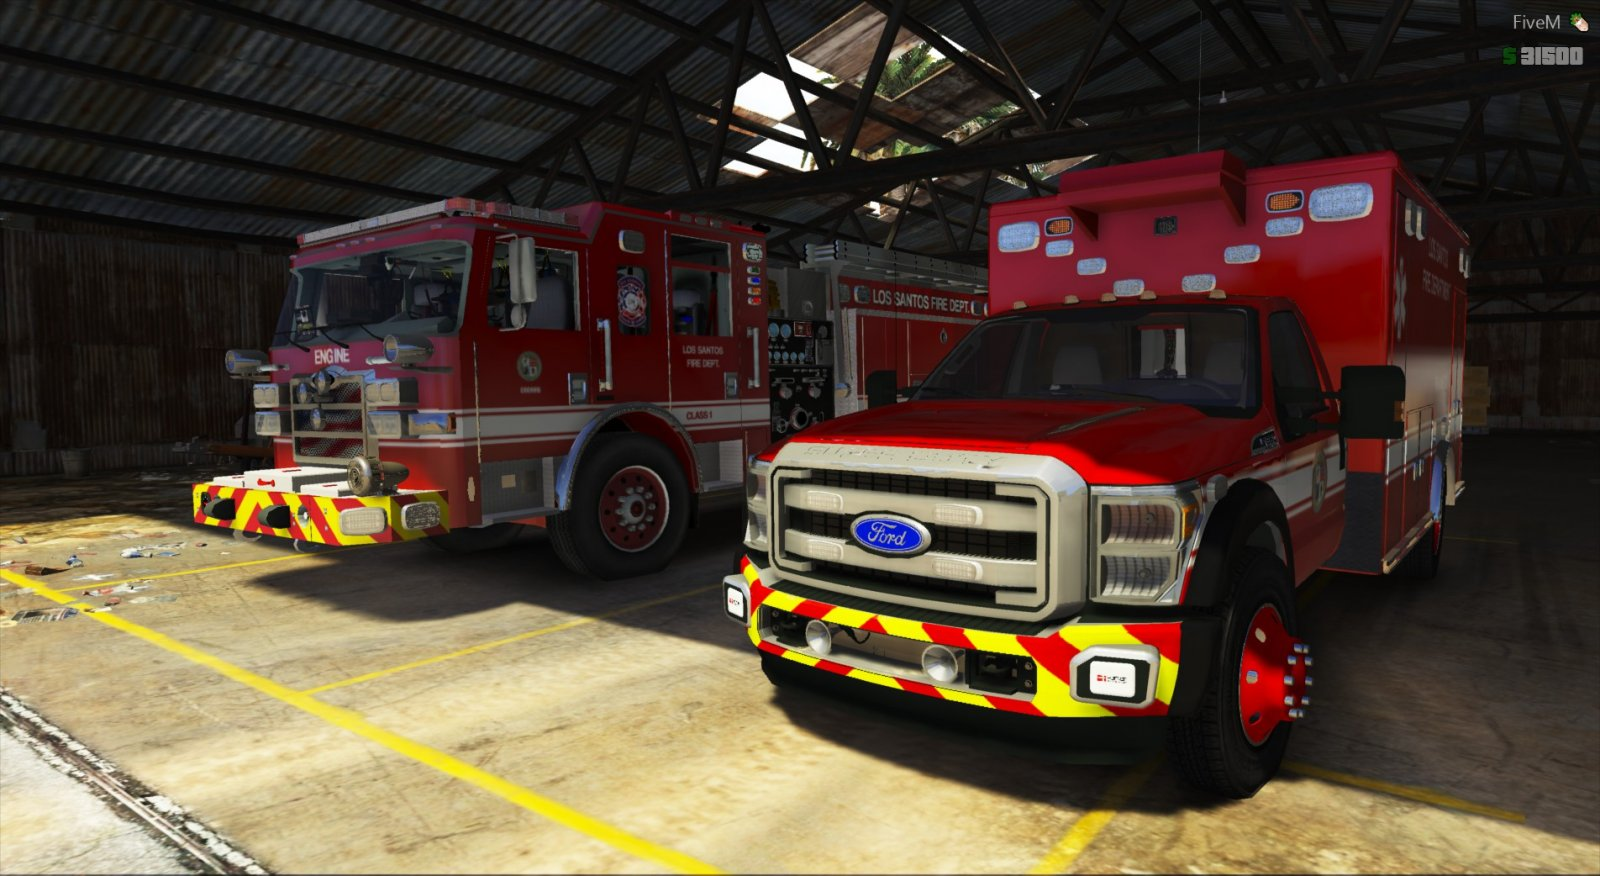 Fire Rescue on standby - San Andreas Communications Department